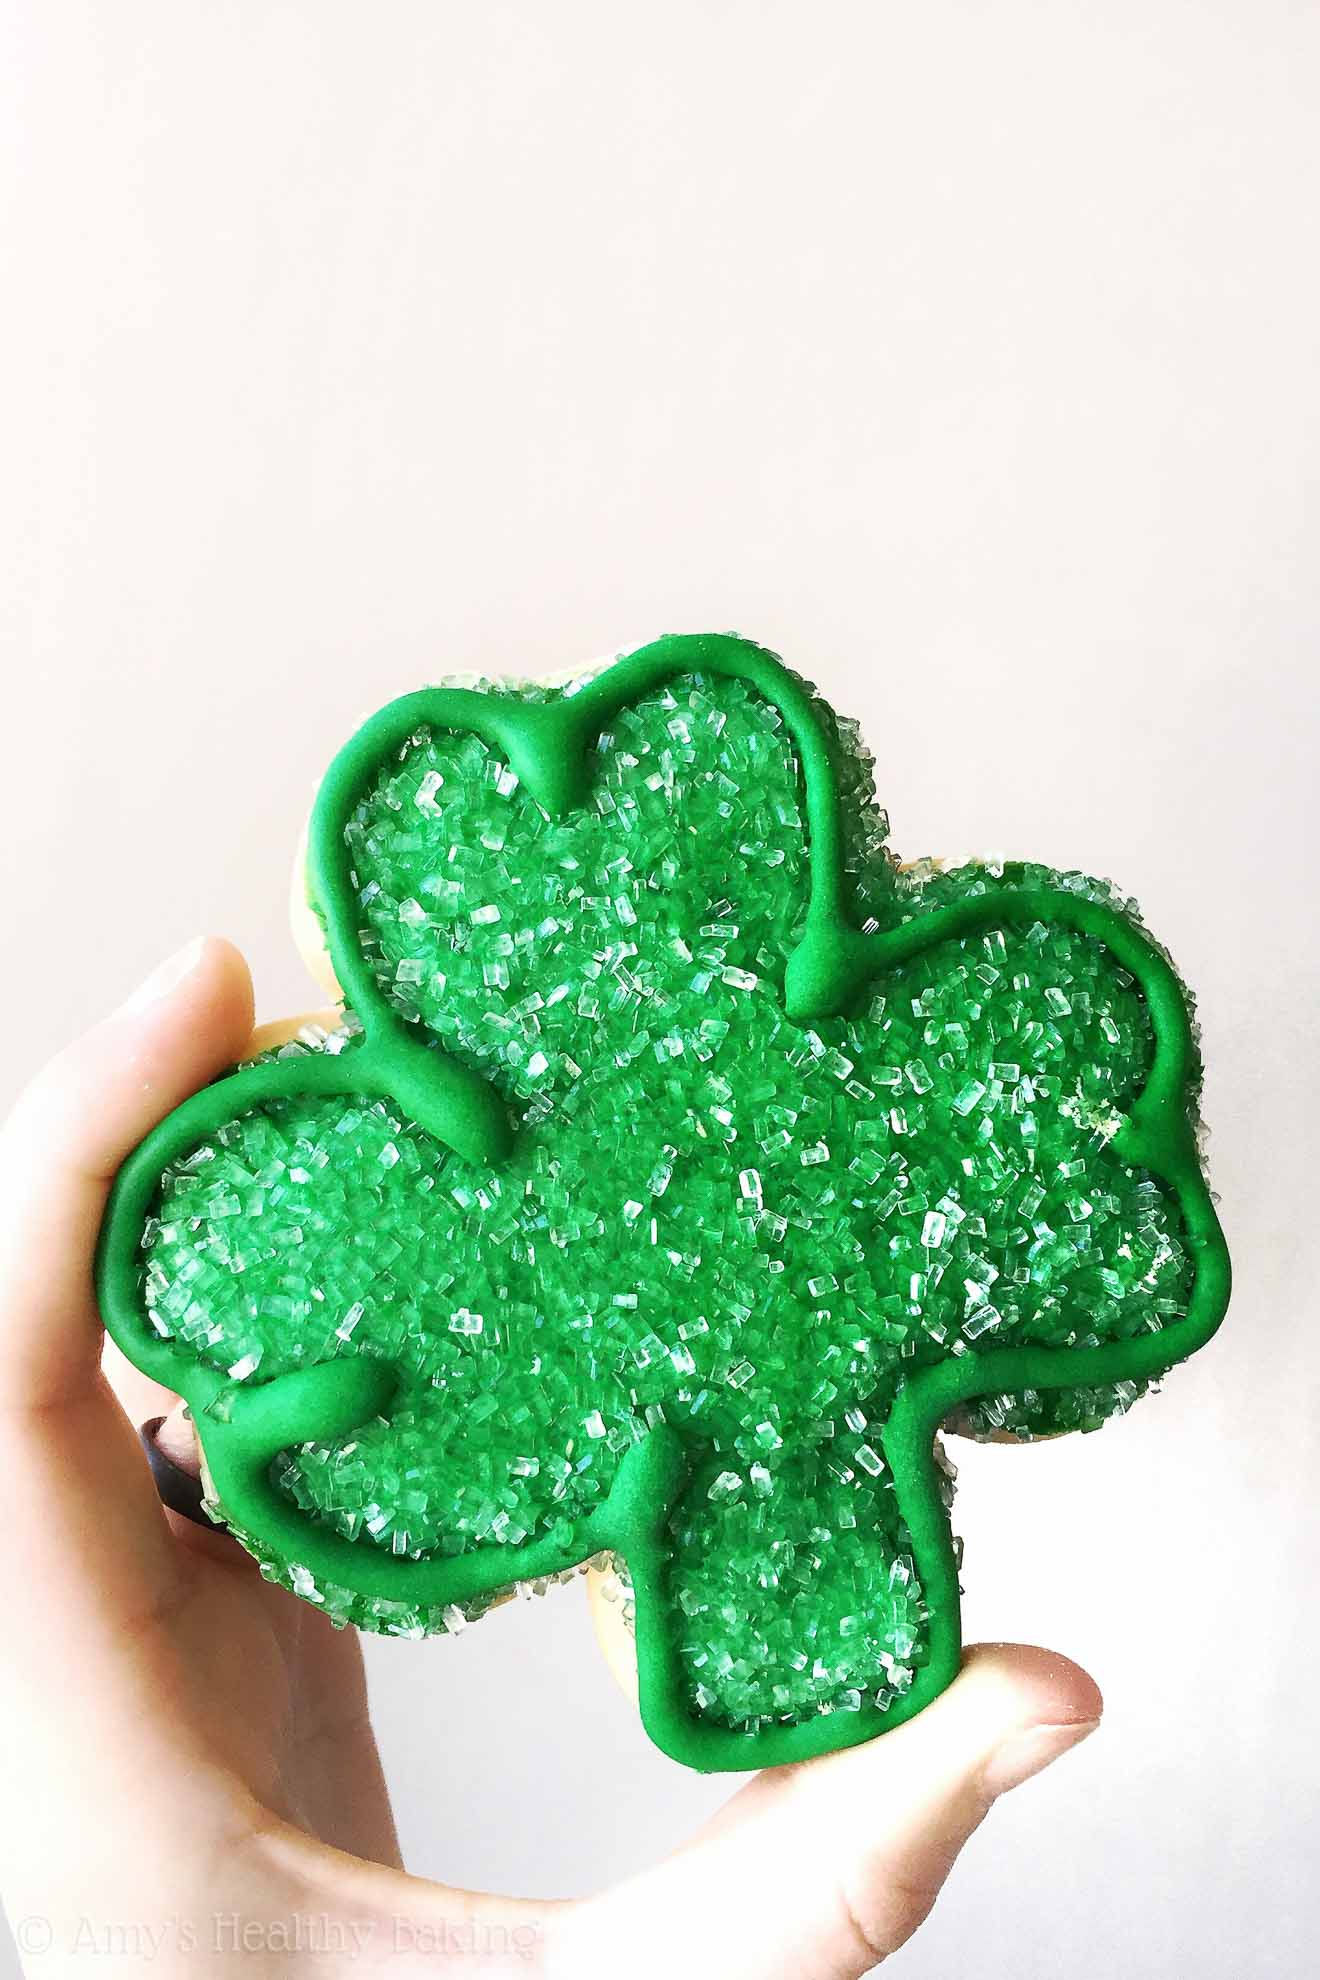 We don't always know what form our luck will take. Sometimes it's a penny, sometimes it's a four-leaf clover, and sometimes it's one extra day with our loved ones.   @amybakeshealthy